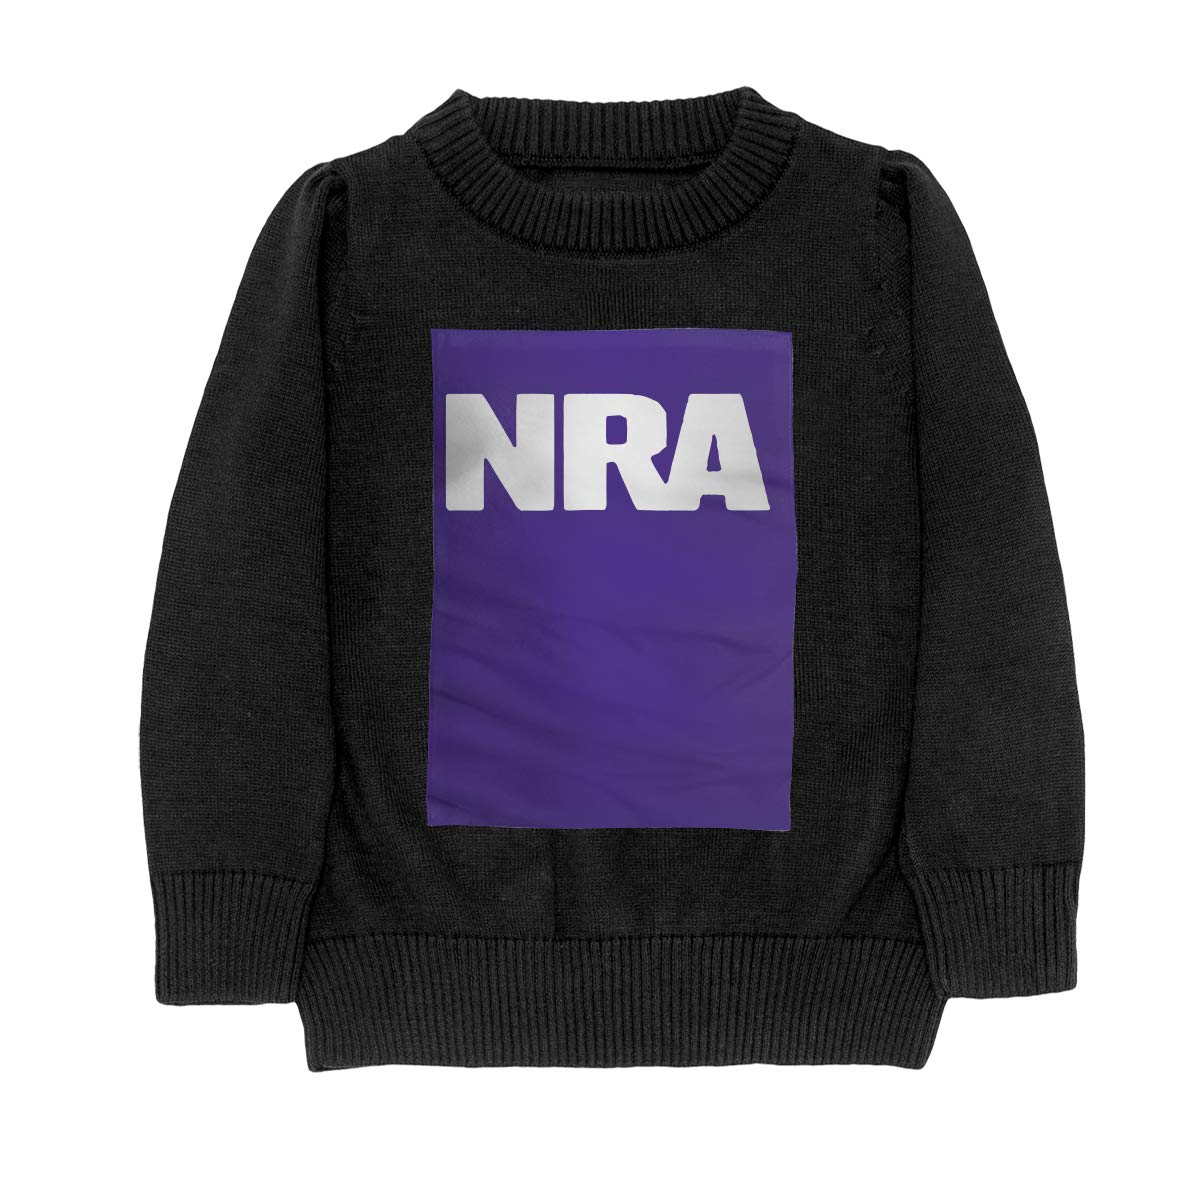 WWTBBJ-B NRA Casual Adolescent Boys Girls Unisex Sweater Keep Warm